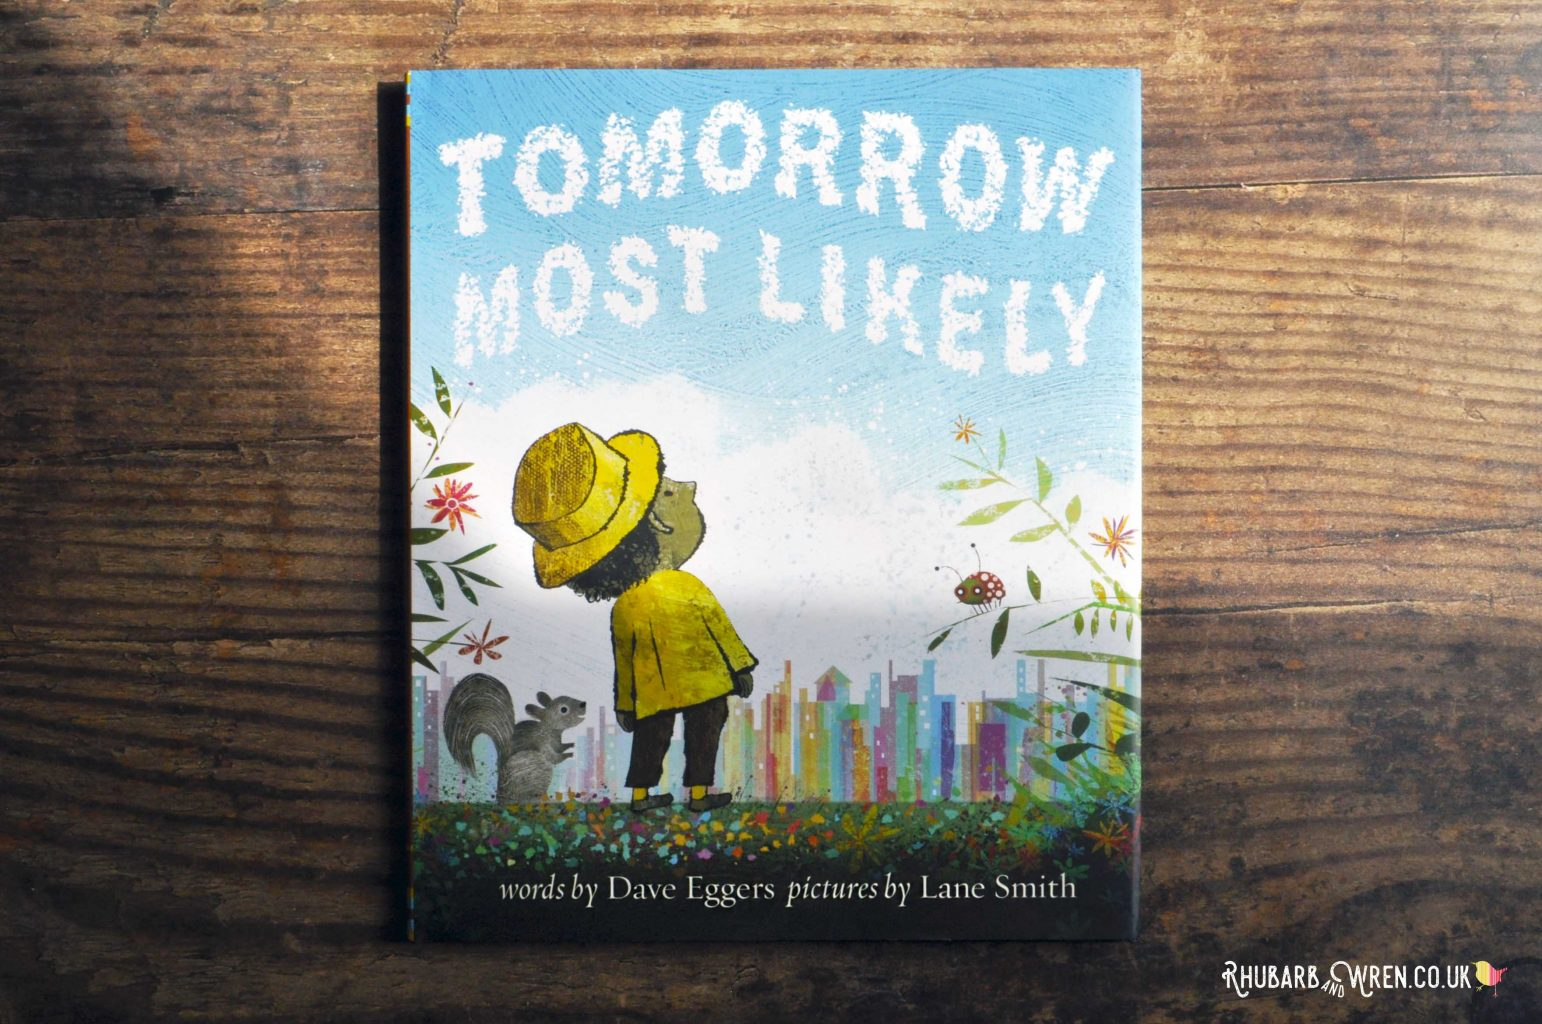 Children's picture book 'Tomorrow Most Likely' by Dave Eggers and Lane Smith.